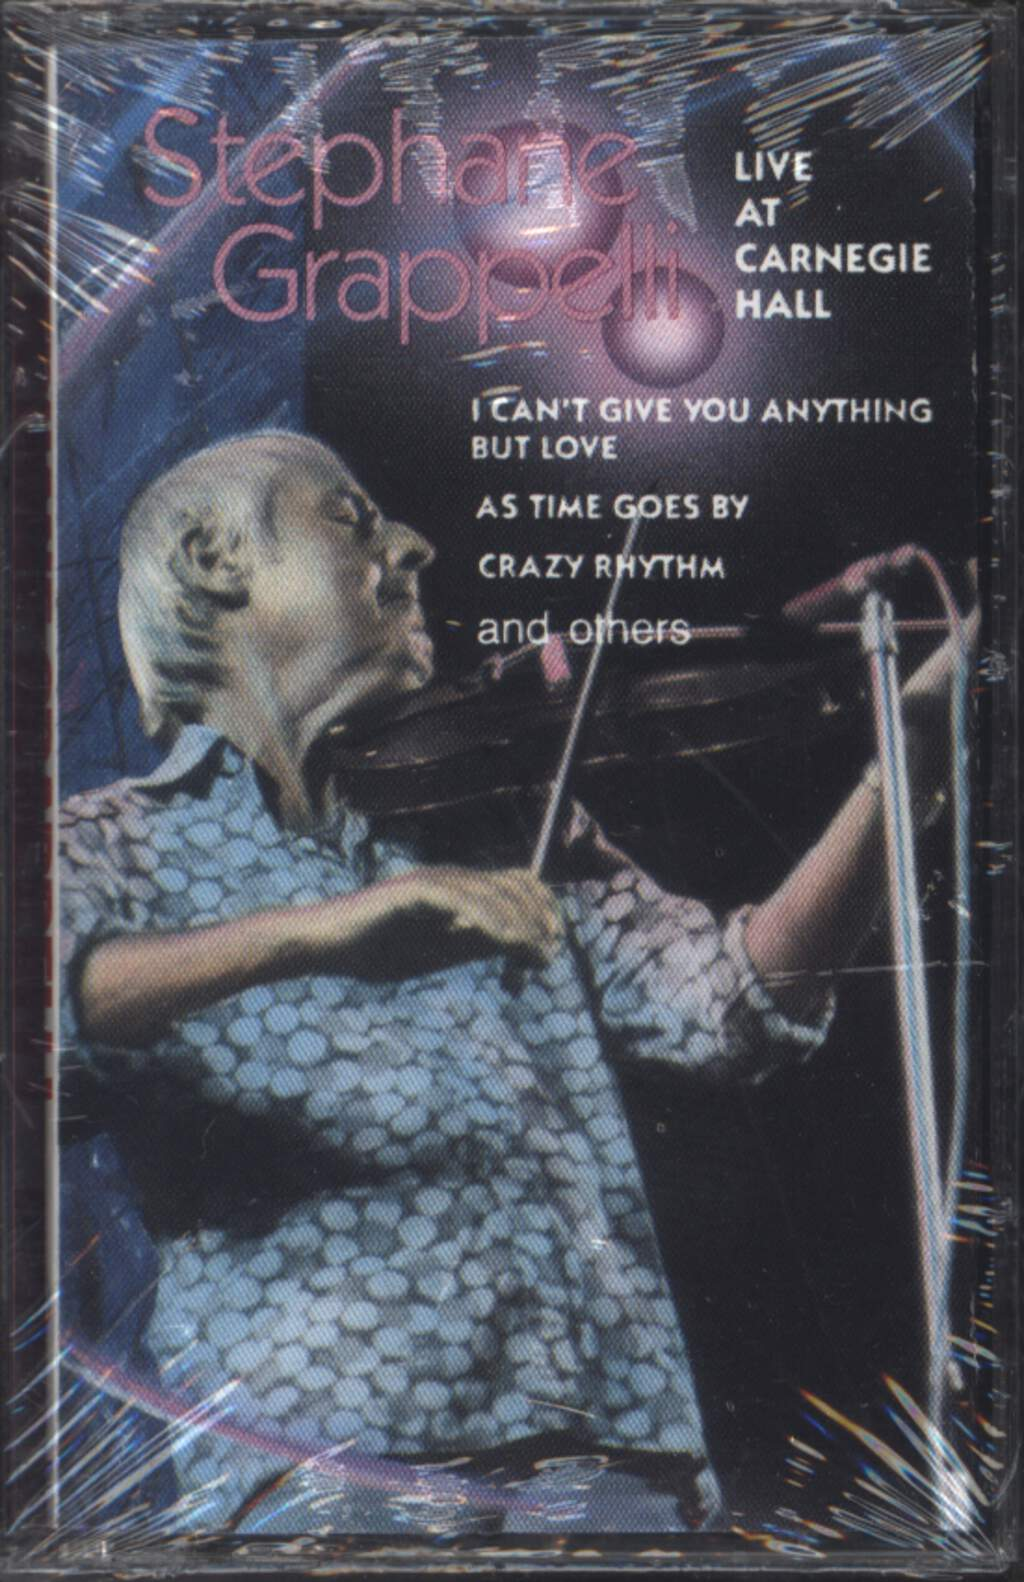 Stéphane Grappelli: Live At Carnegie Hall, Compact Cassette